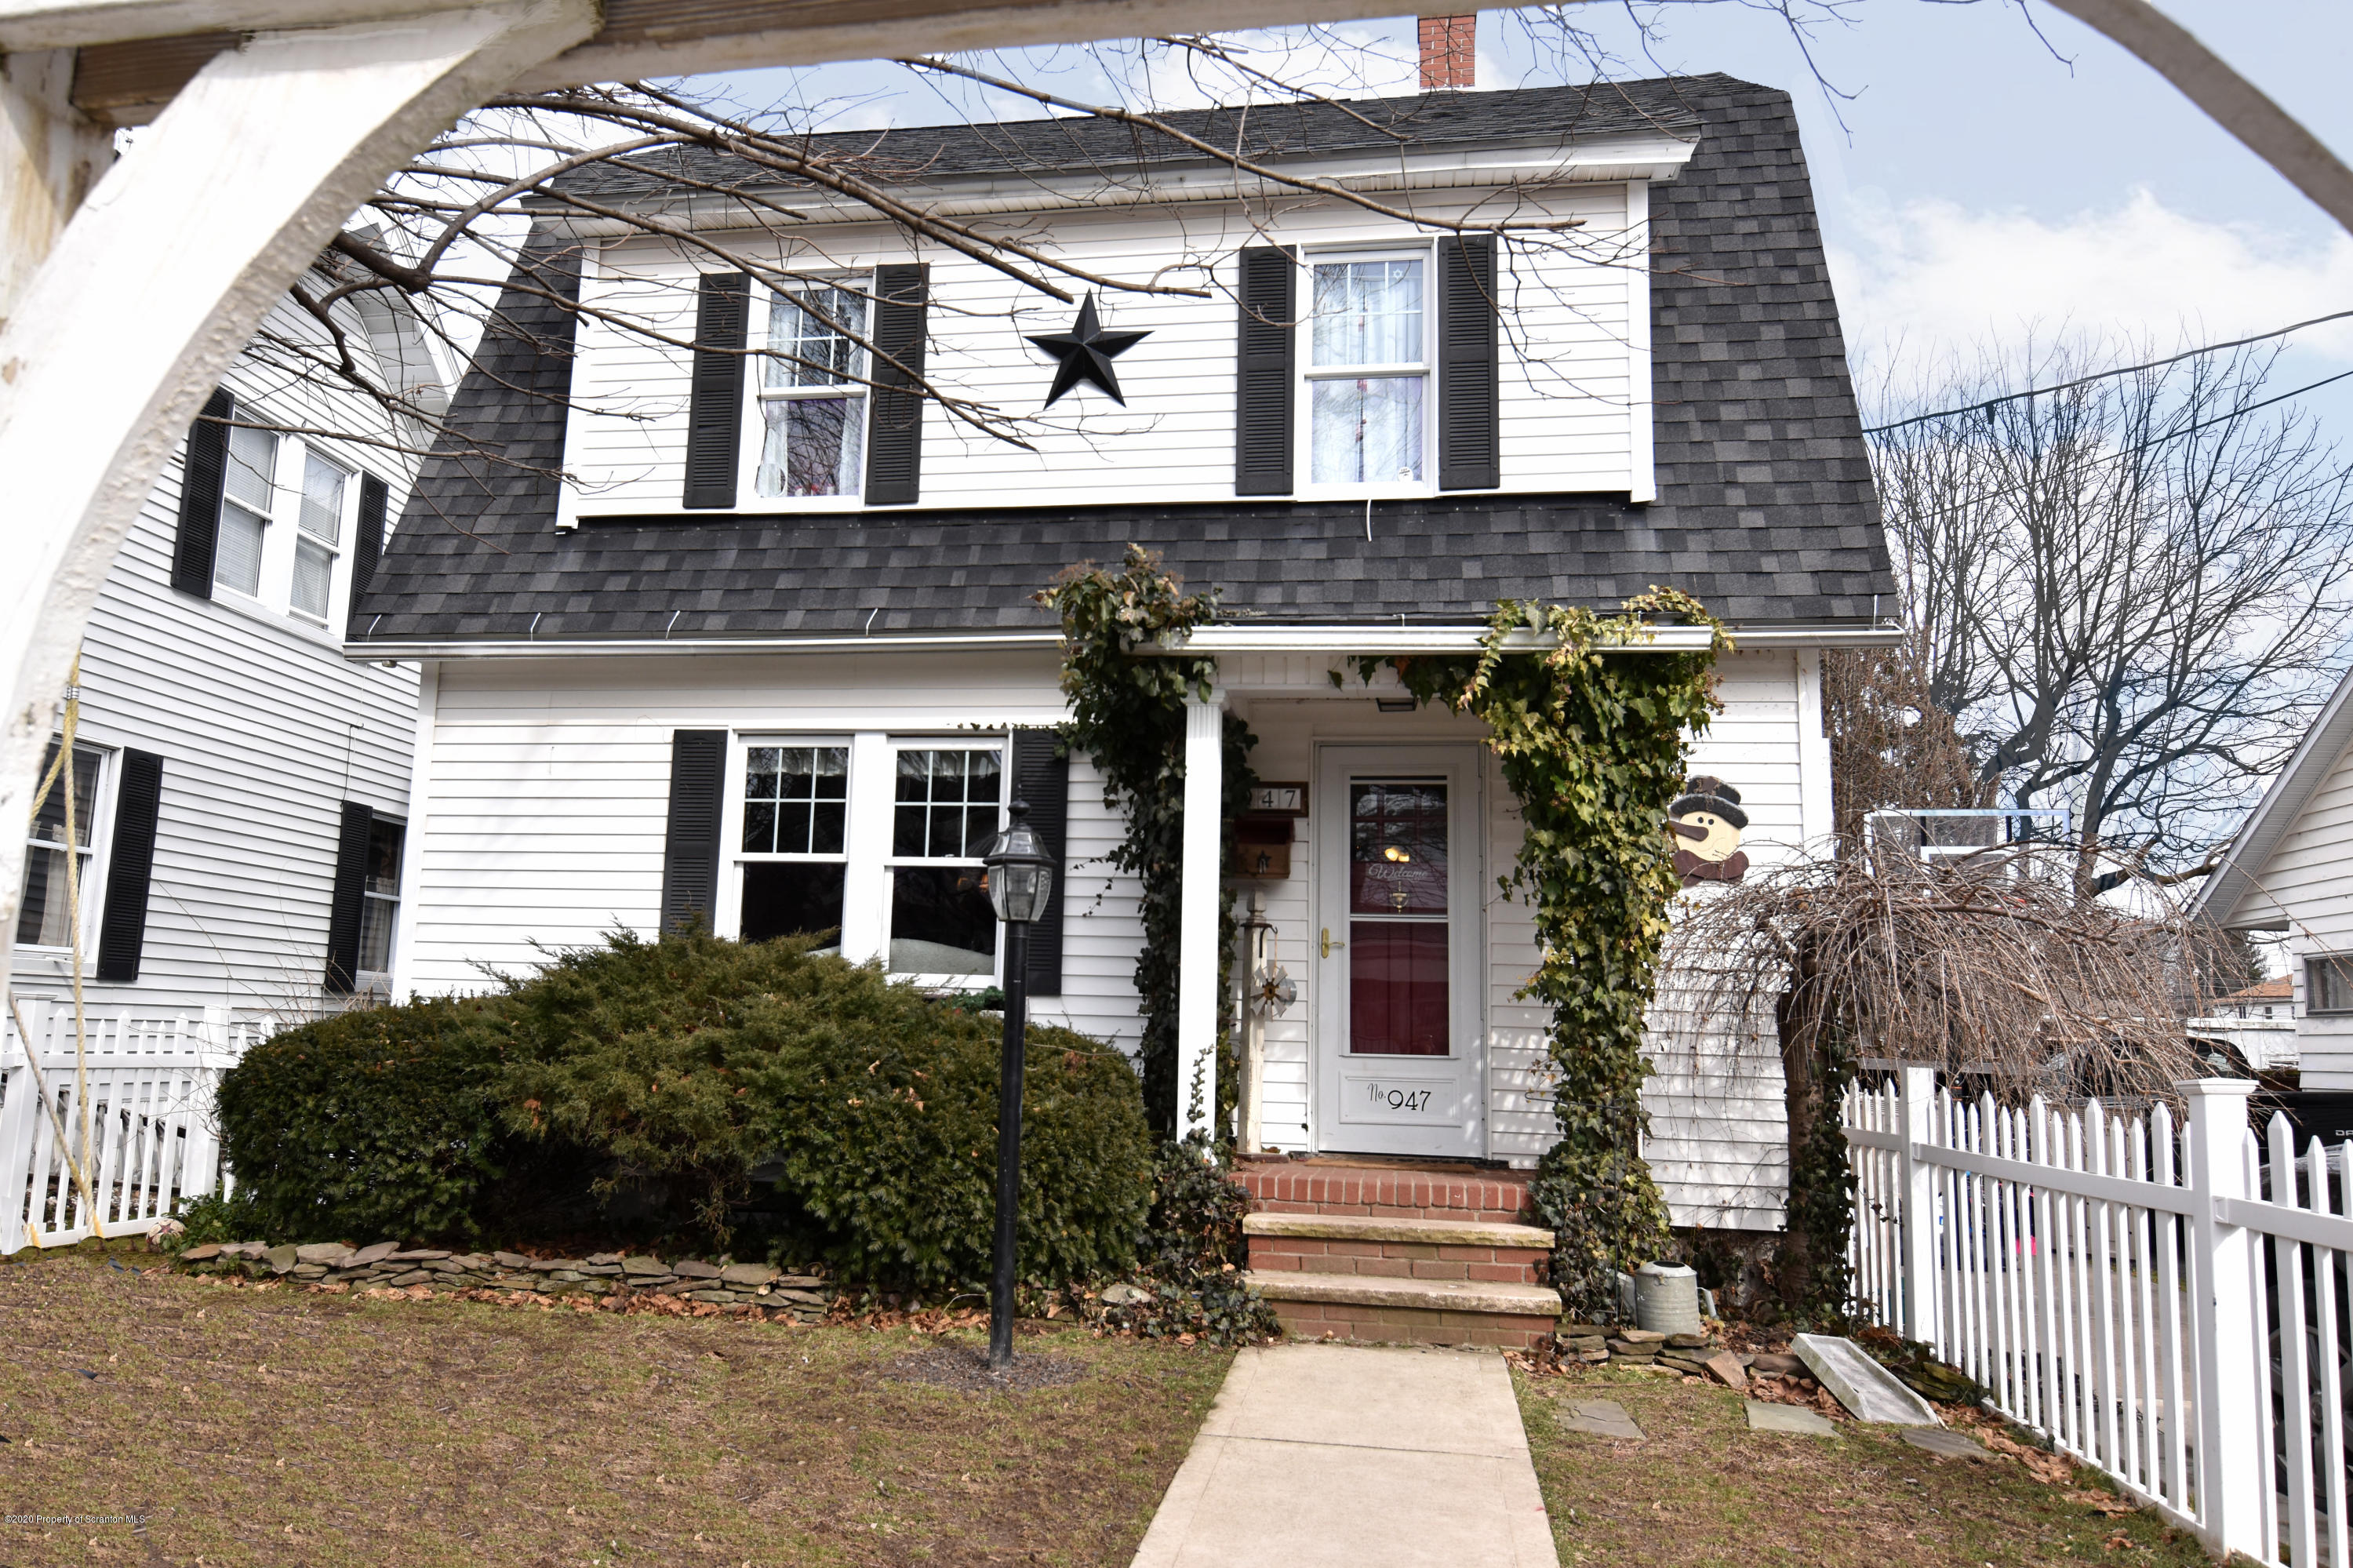 947 Cottage Ave, Peckville, Pennsylvania 18452, 4 Bedrooms Bedrooms, 8 Rooms Rooms,3 BathroomsBathrooms,Single Family,For Sale,Cottage,20-602